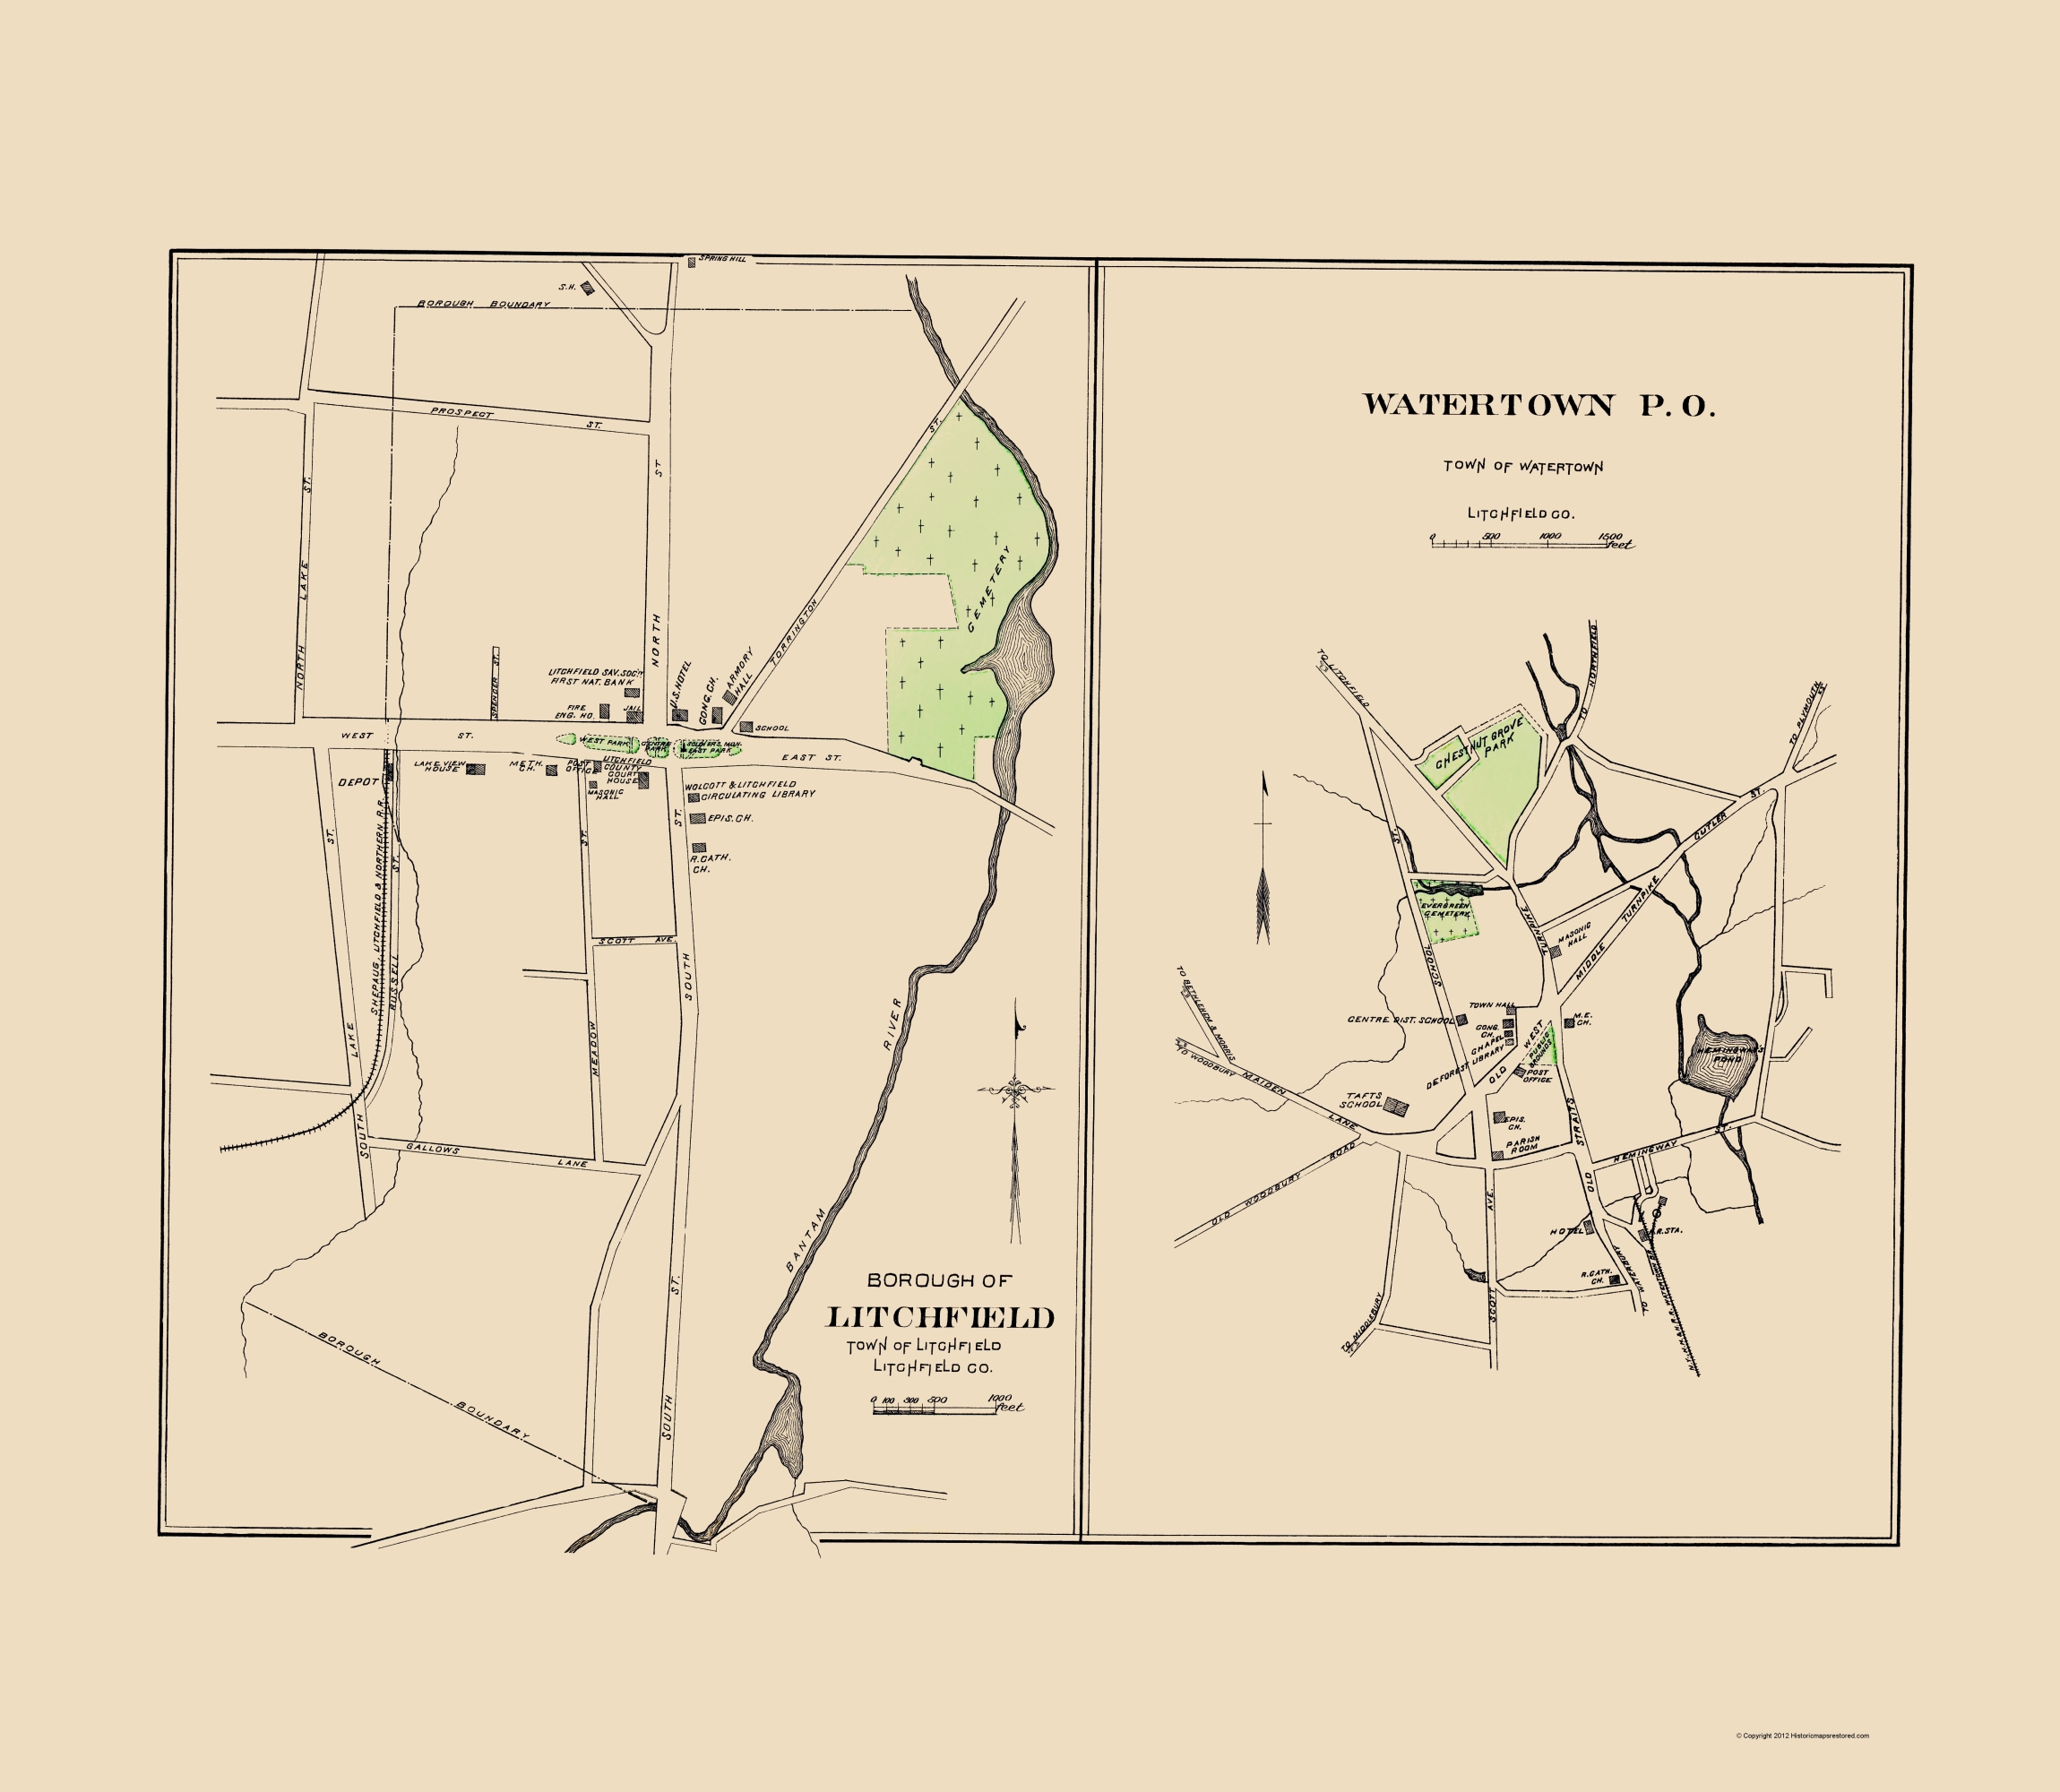 Old City Map - Watertown, Litchfield Connecticut 1893